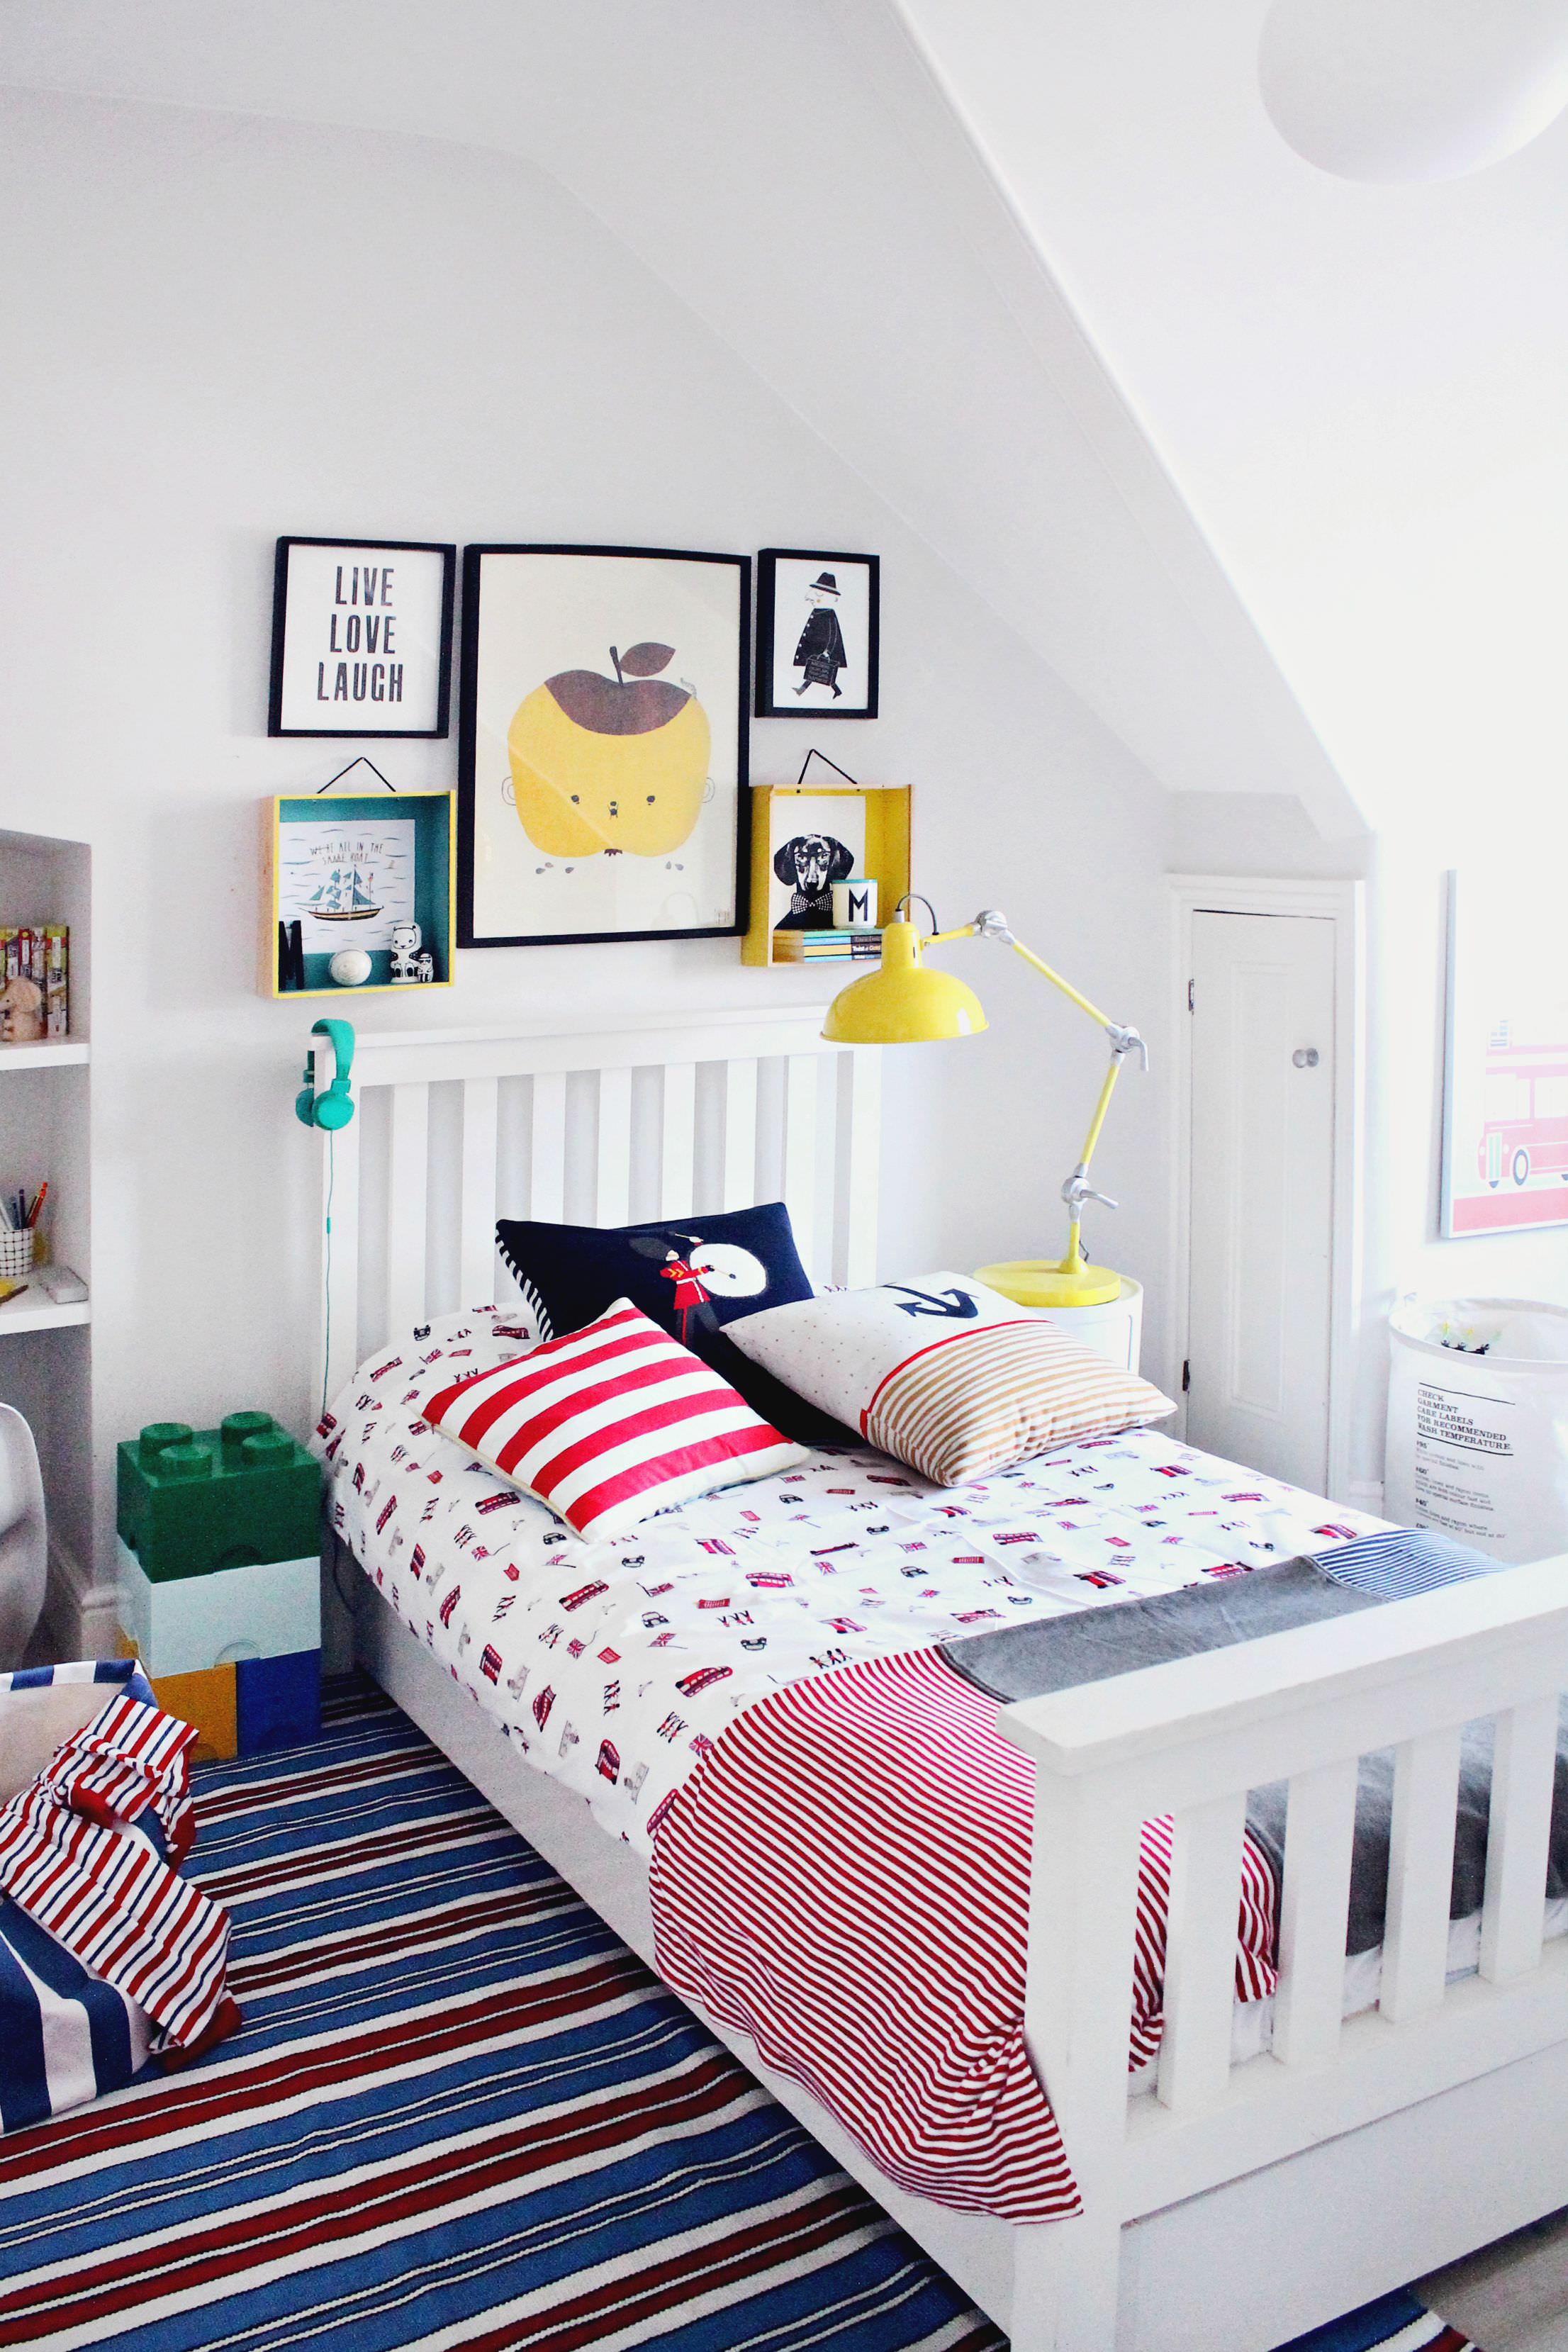 littleBIGBELL Boy\'s bedroom makeover with The Little White ...